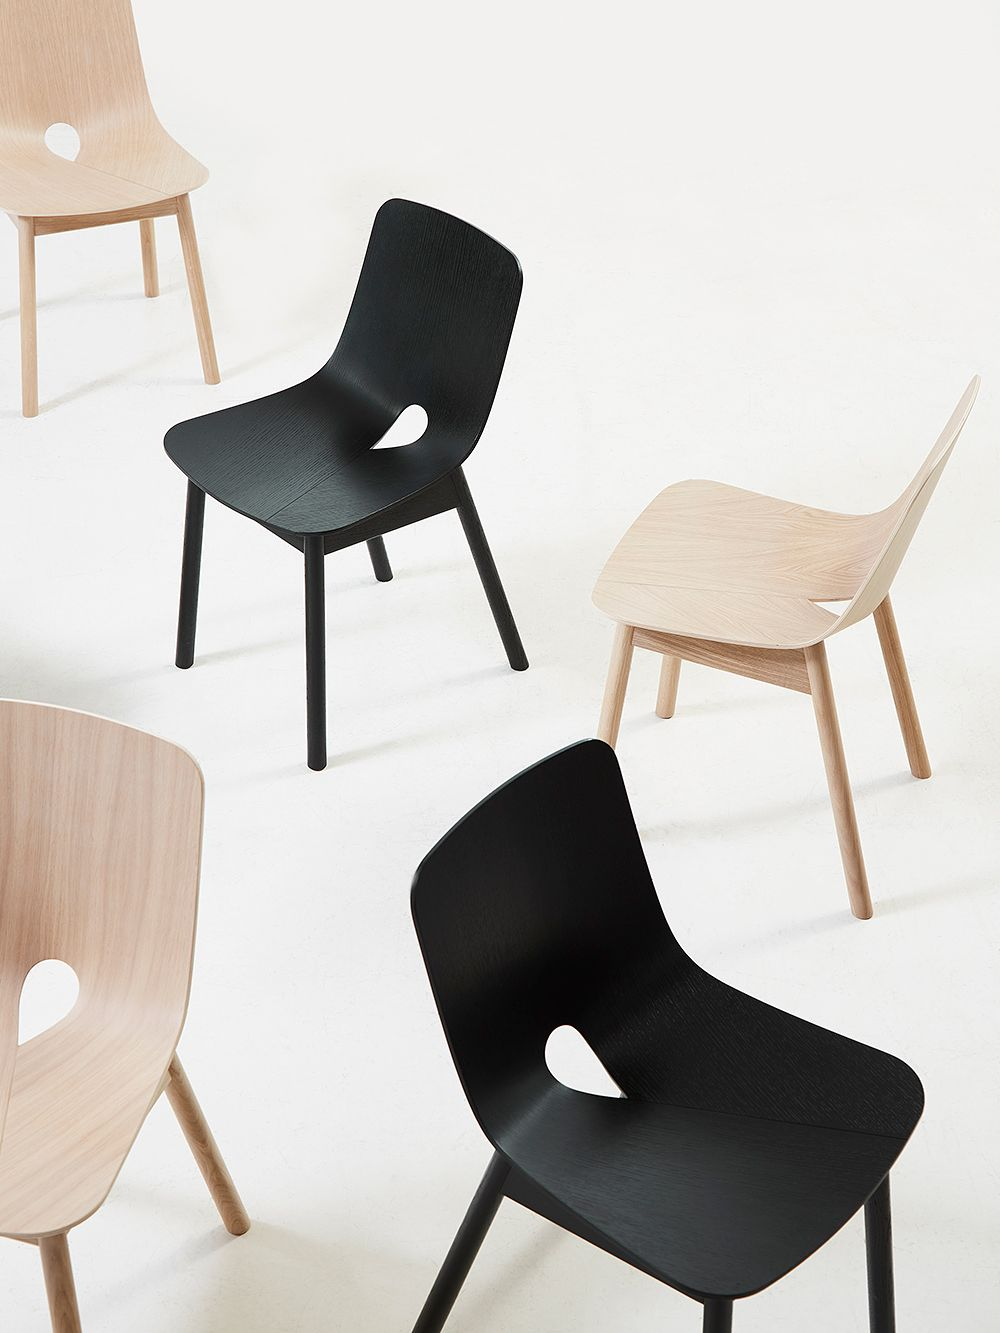 Woud's Mono chairs by Kasper Nyman